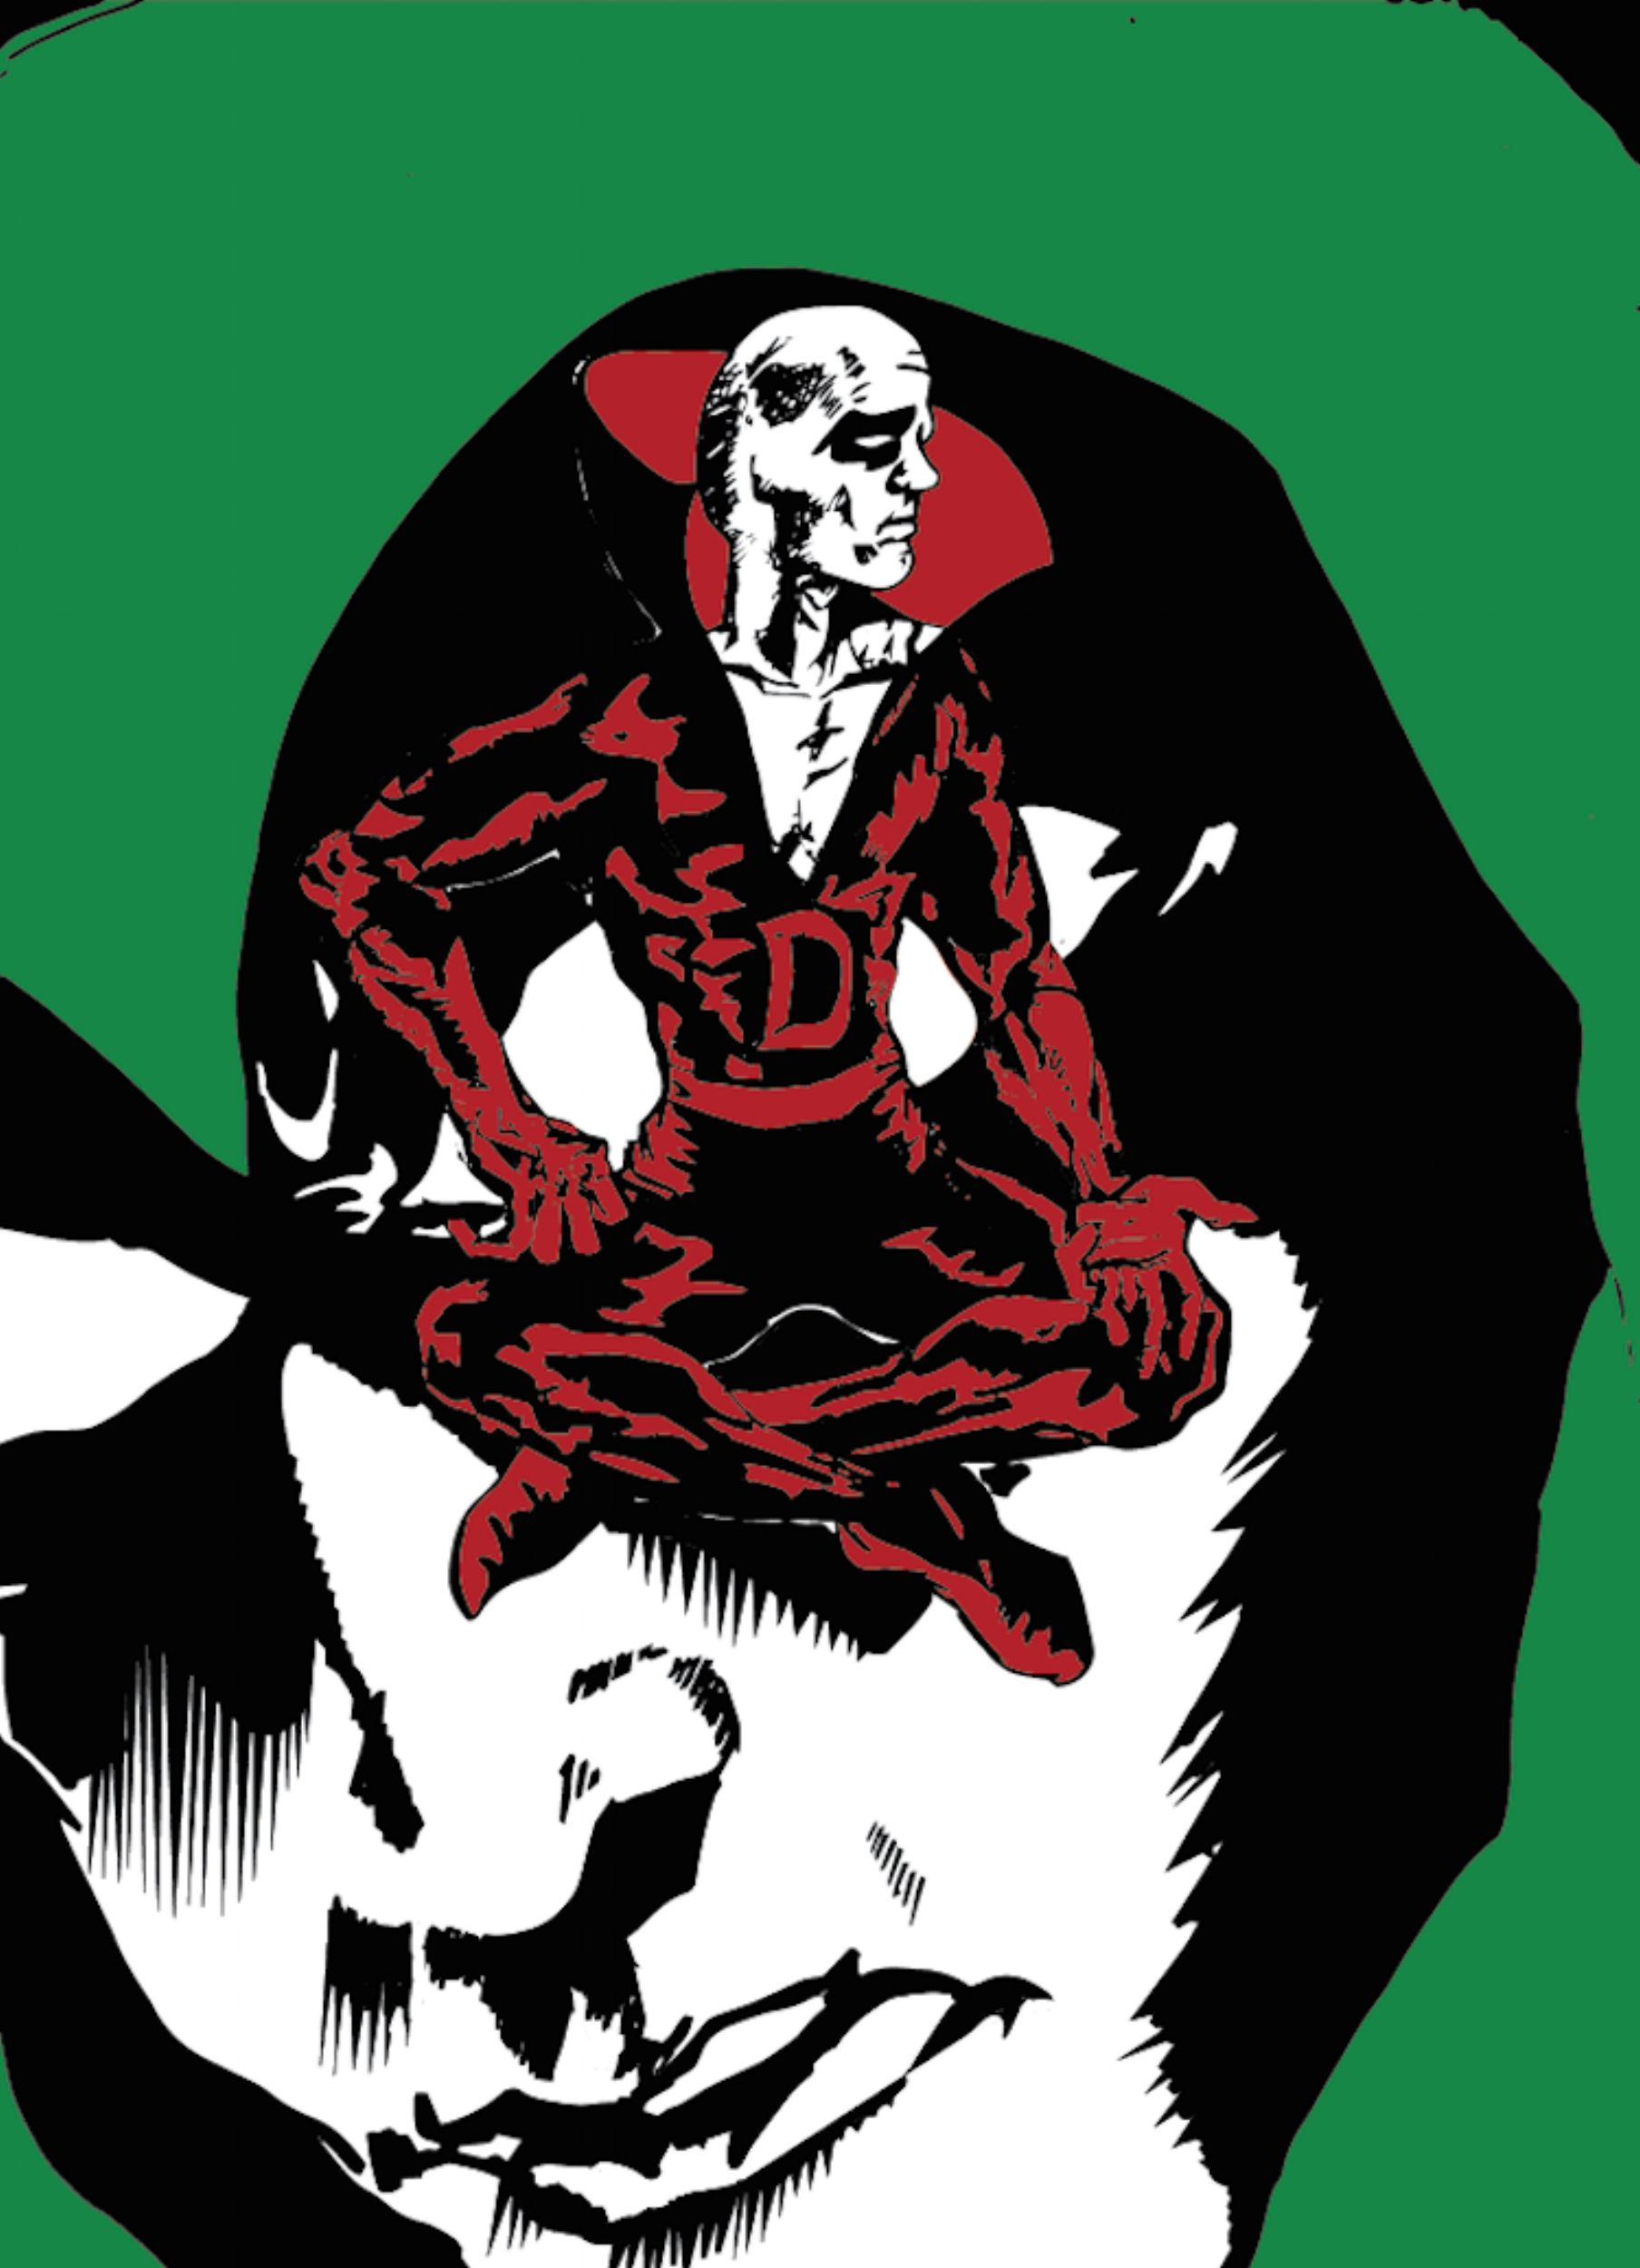 DC comics' Deadman and The Spectre having an intimate chat in (not-so) living color. ('Cause they're both dead. Get it?)